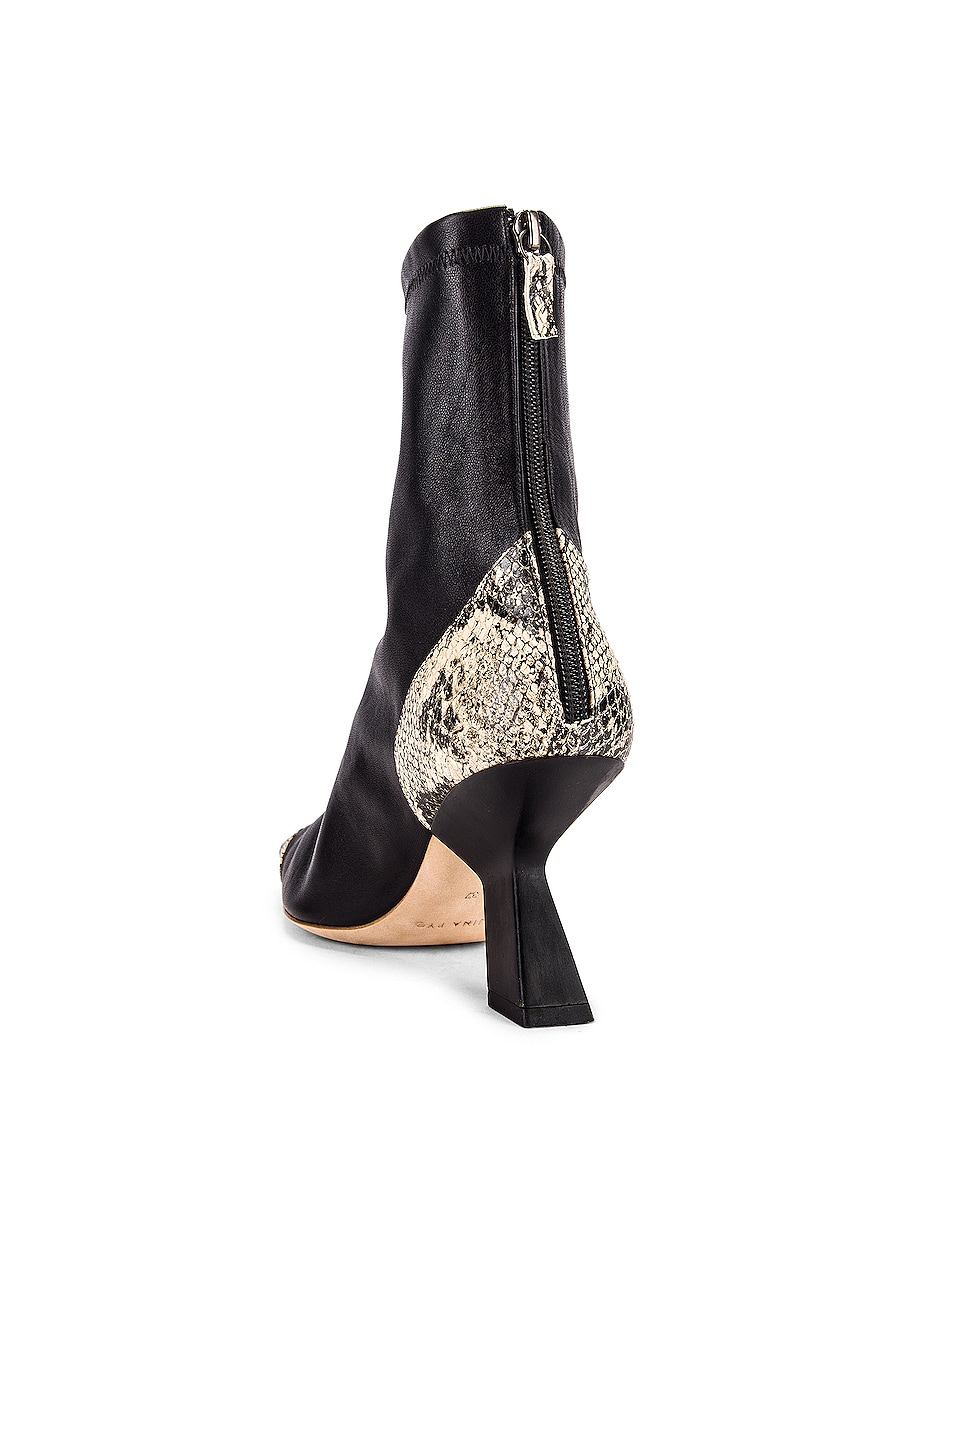 Image 3 of REJINA PYO Marley 80 Boot in Black & Boa Beige